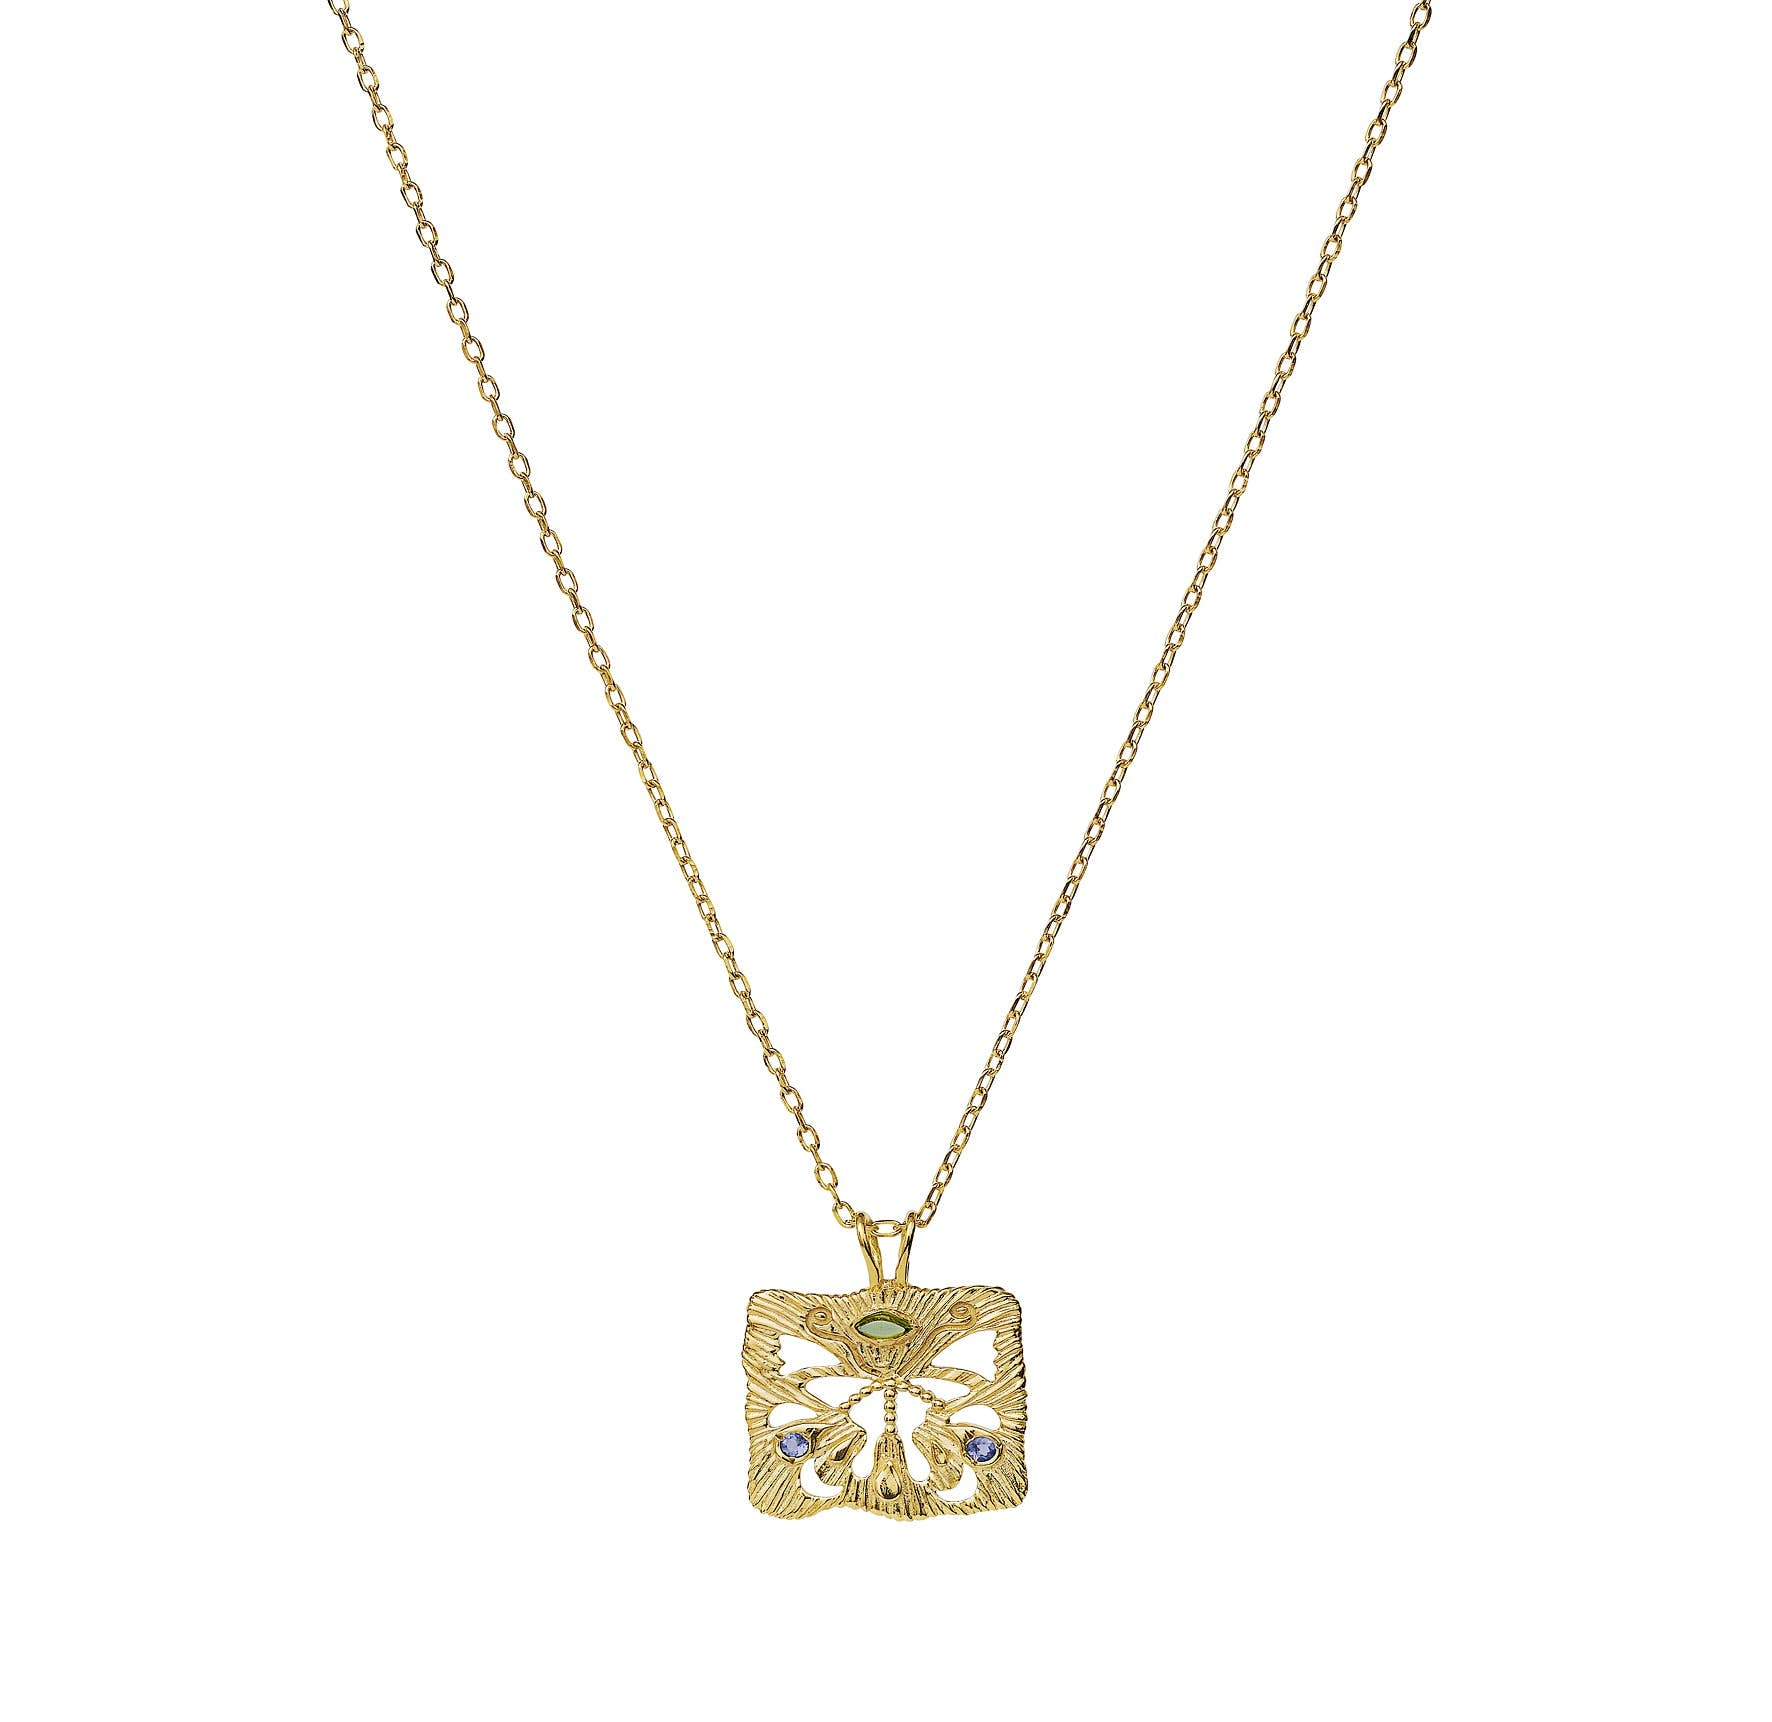 Annabella Necklace from Maanesten in Goldplated-Silver Sterling 925